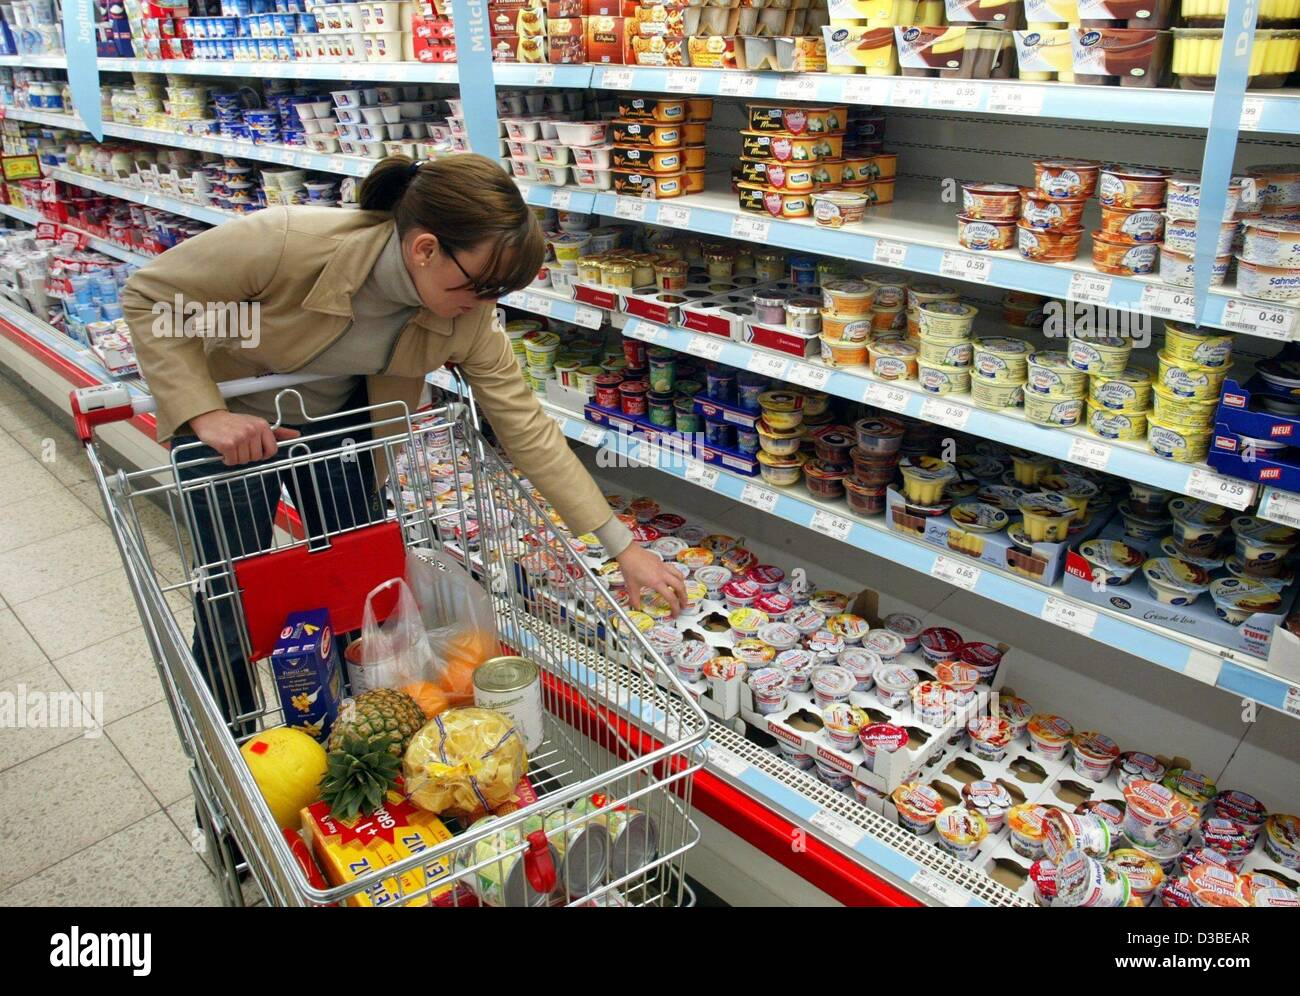 (dpa) - A young lady chooses a yoghurt from the refrigerated shelf of dairy products in a supermarket in Duesseldorf, - Stock Image